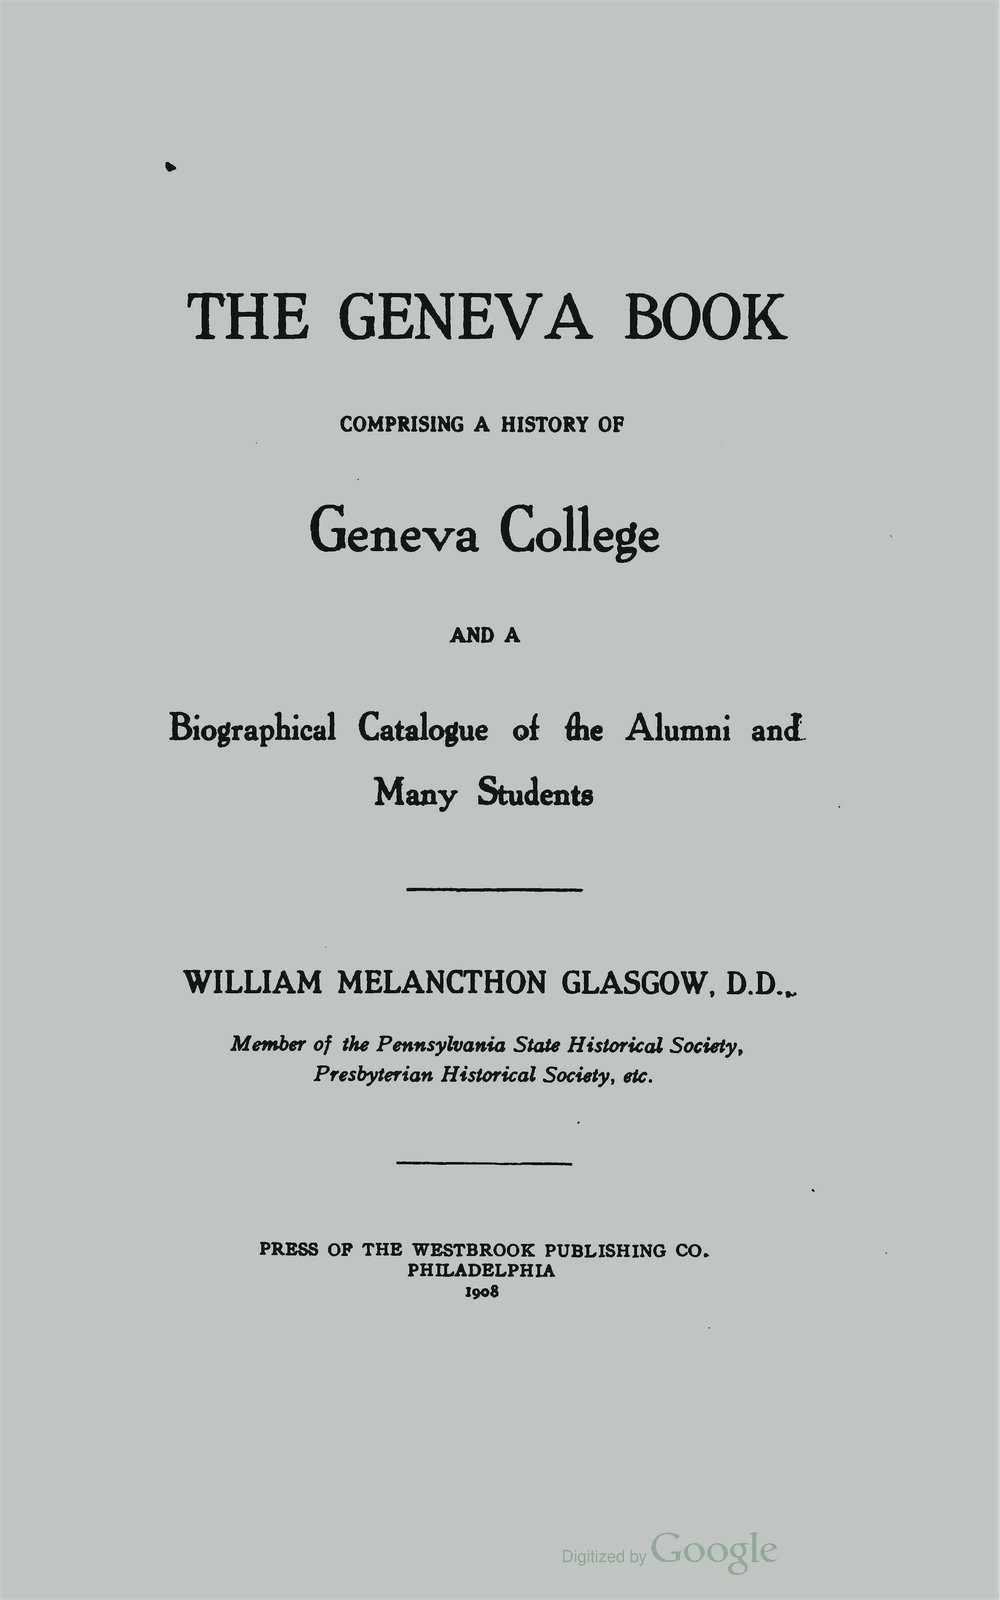 Glasgow, William Melancthon, The Geneva Book Title Page.jpg